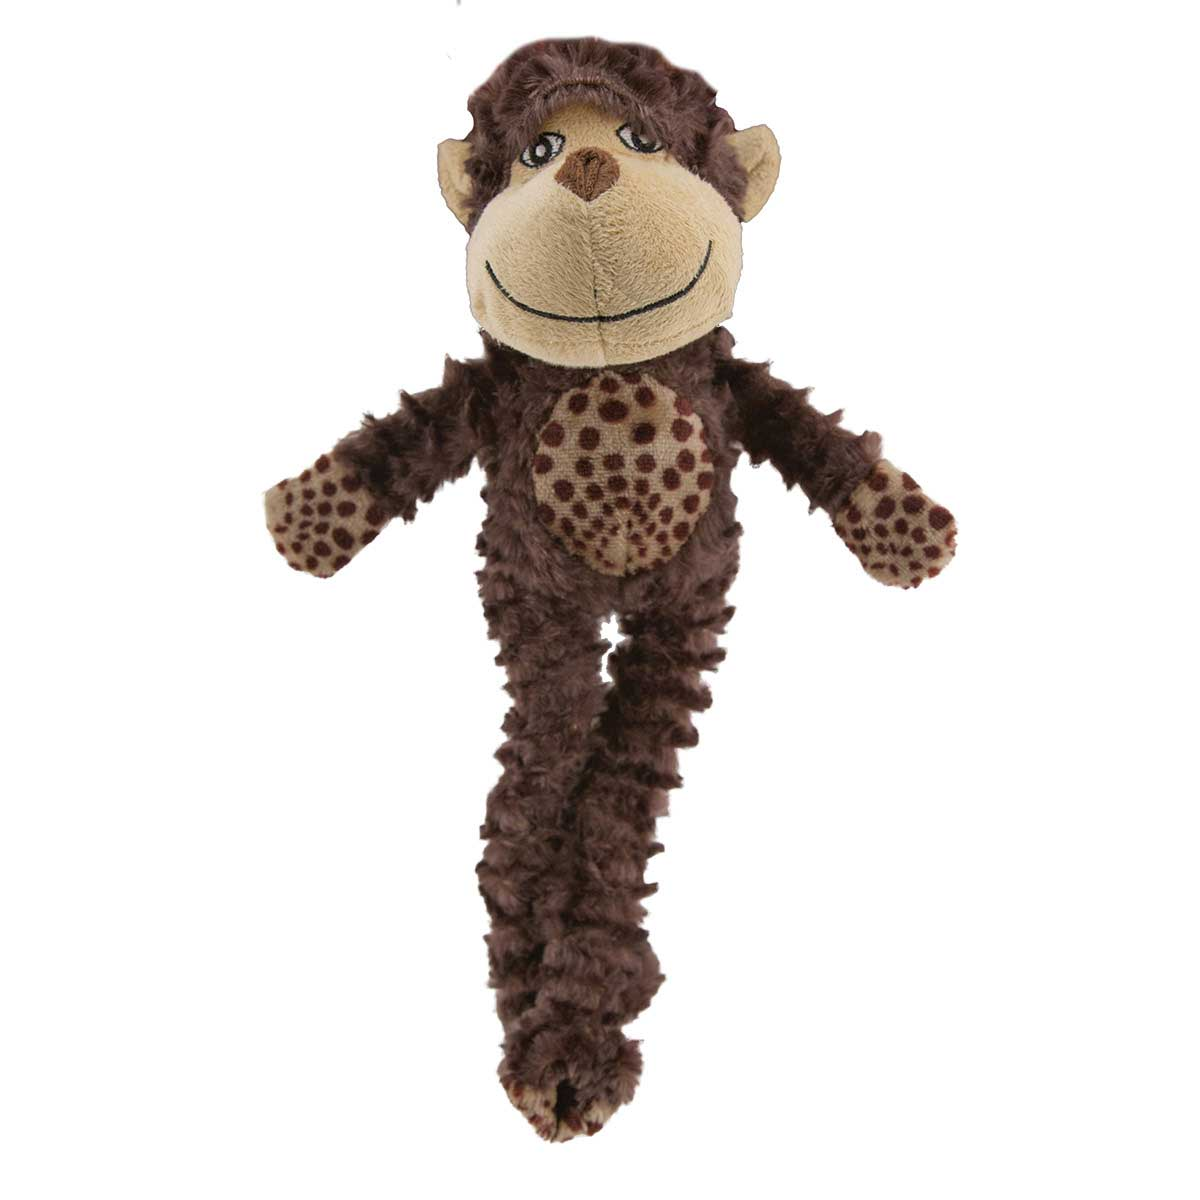 Dawgeee Toy Adventure Rope Leg Monkey for Dogs